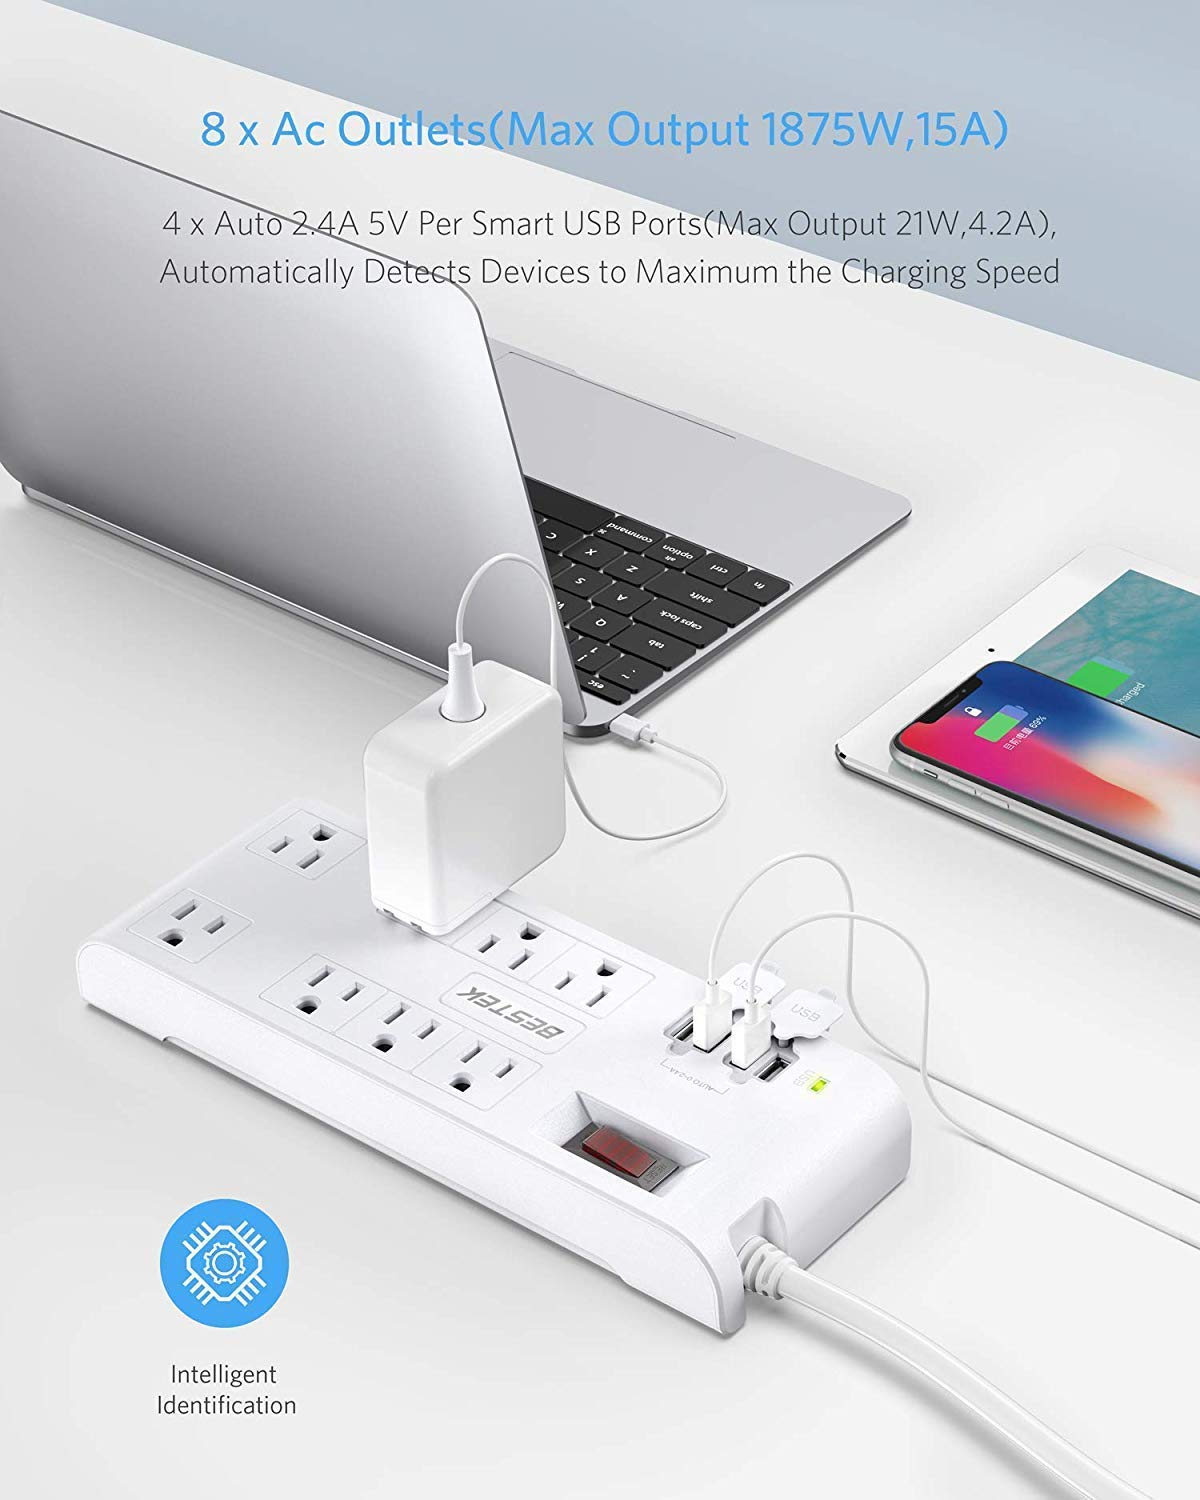 [US Direct] Original BESTEK 8-Outlet 15A Surge Protector Power Strip with USB, 5V 4.2A 4-Port Smart USB Charging Station, 600J, 12 Feet Heavy Duty Extension Cord (White) white_12 Feet